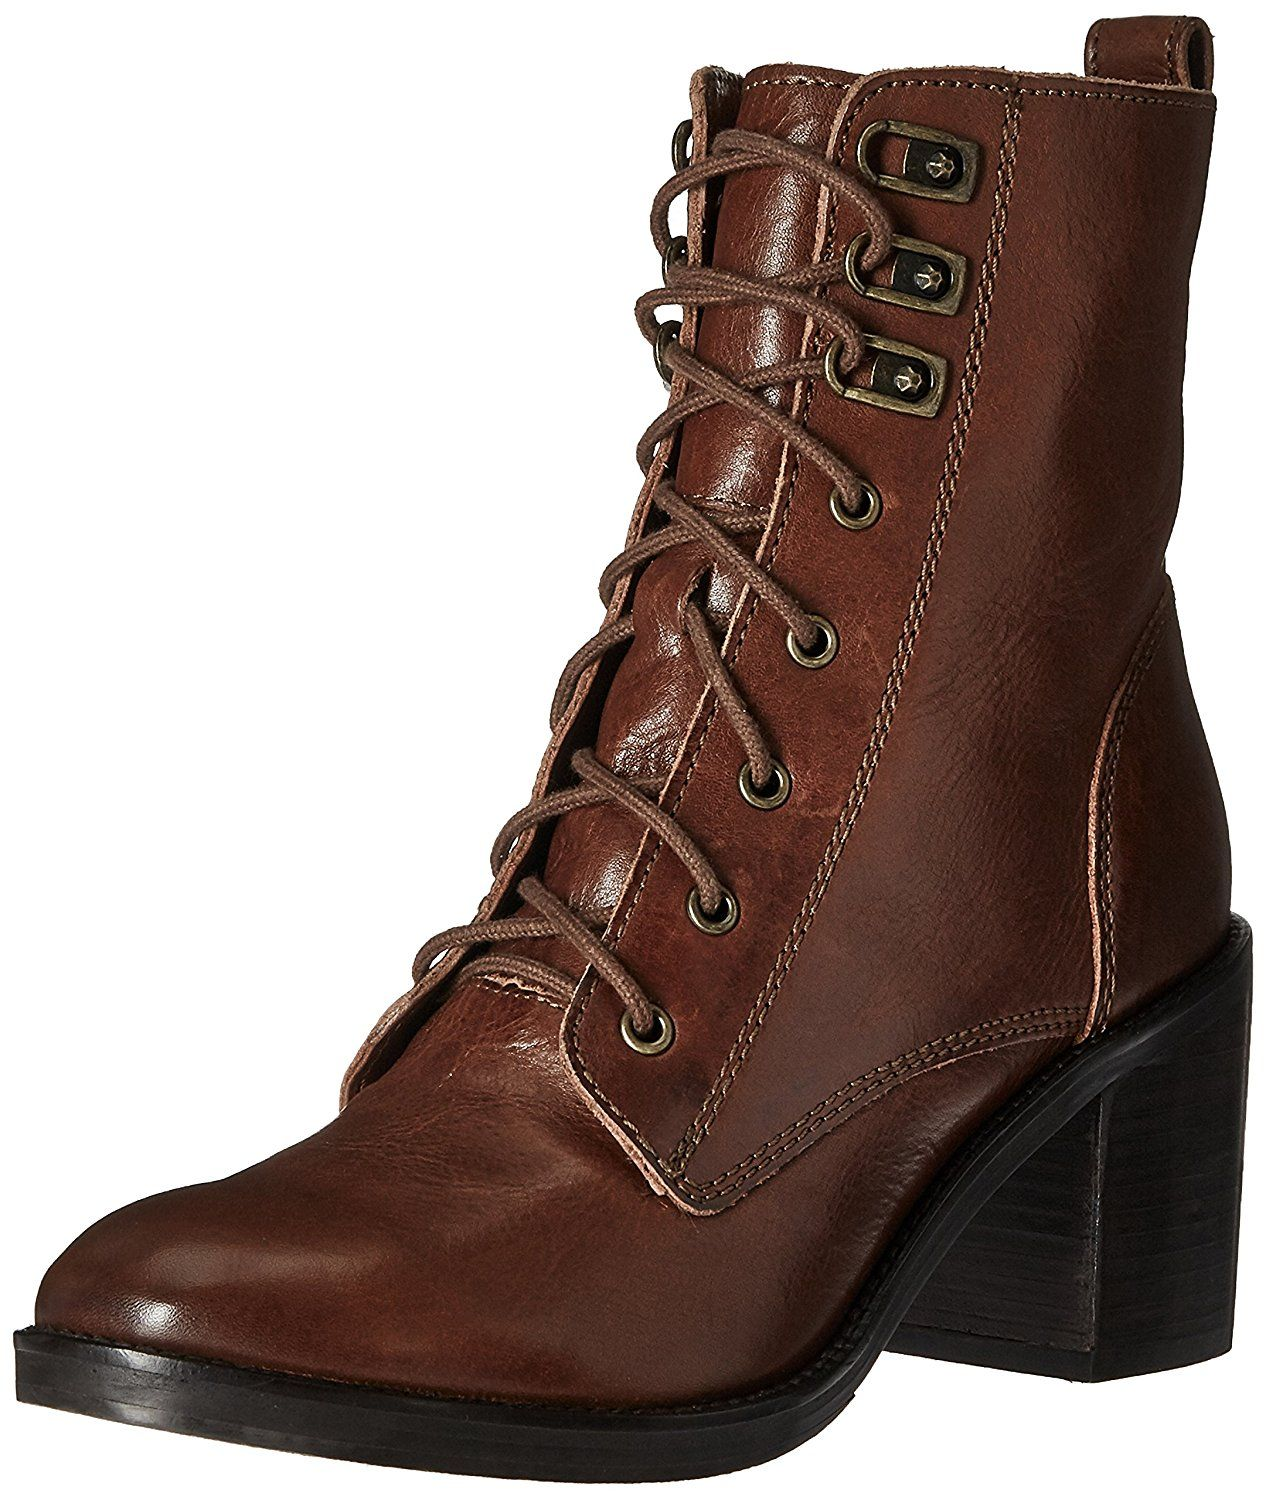 Kenneth Cole Reaction Jenis Jay Boot (Women's)